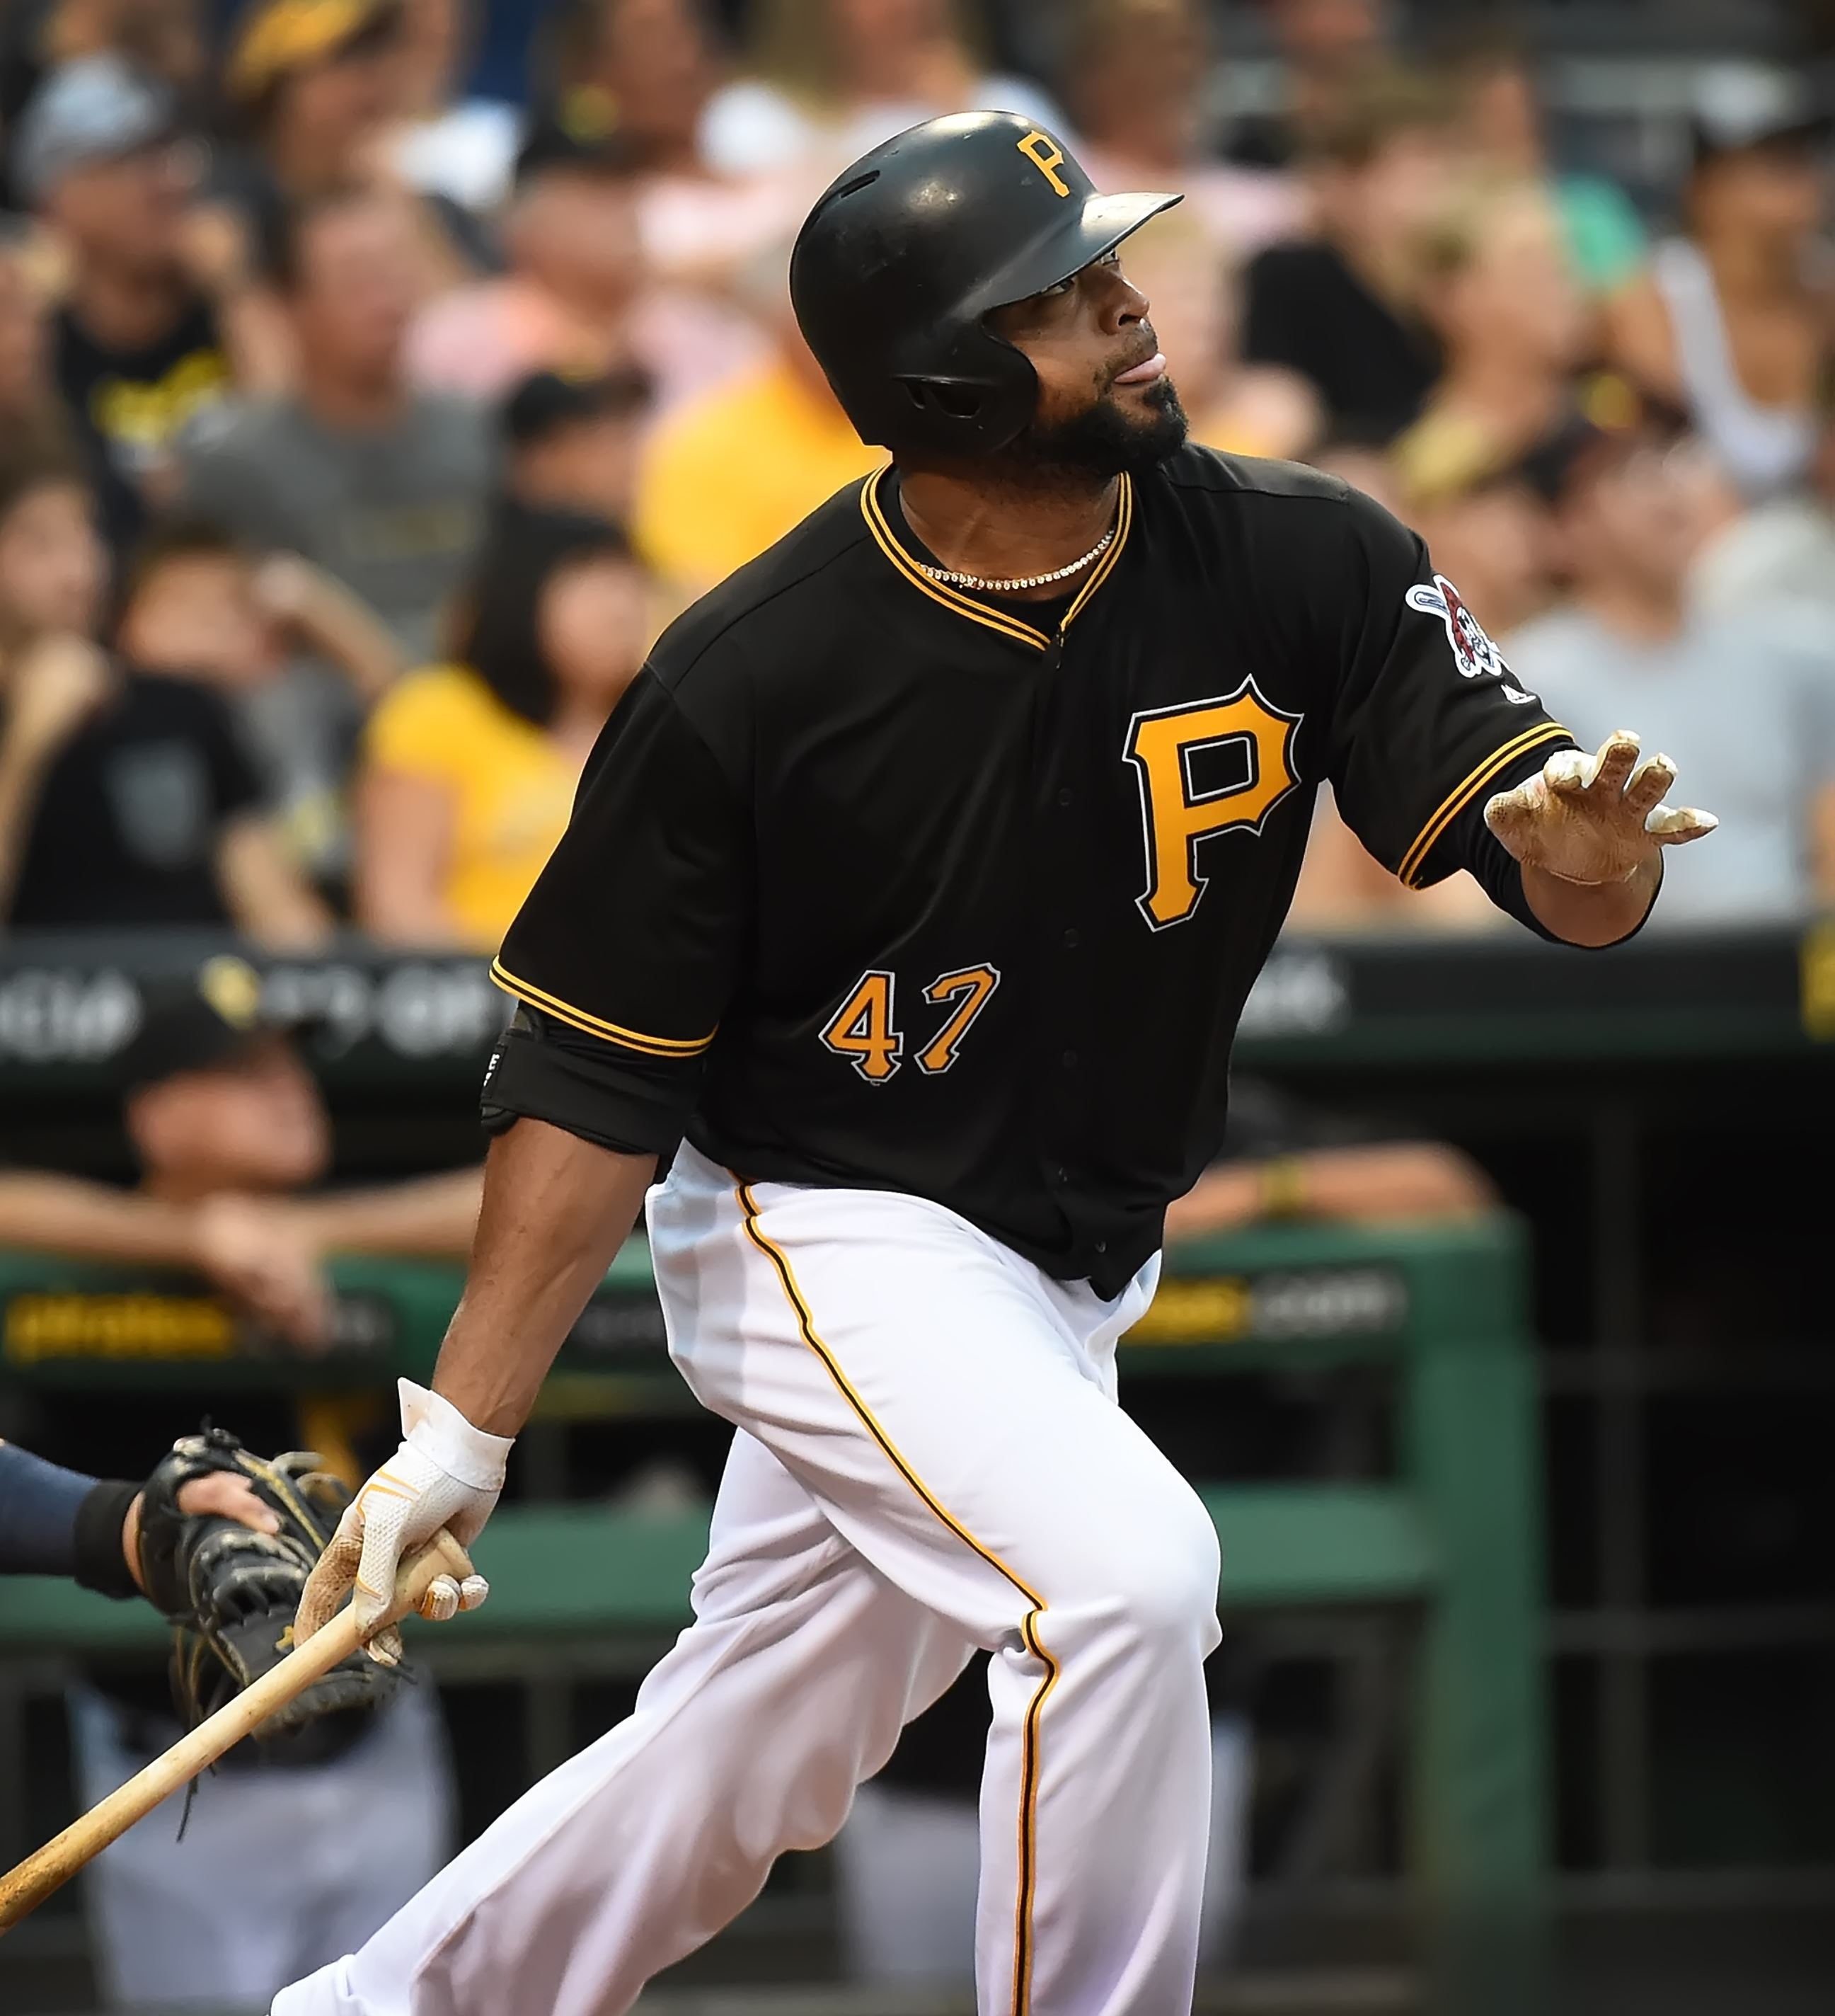 Ron Cook: Liriano takes a step back against Seattle